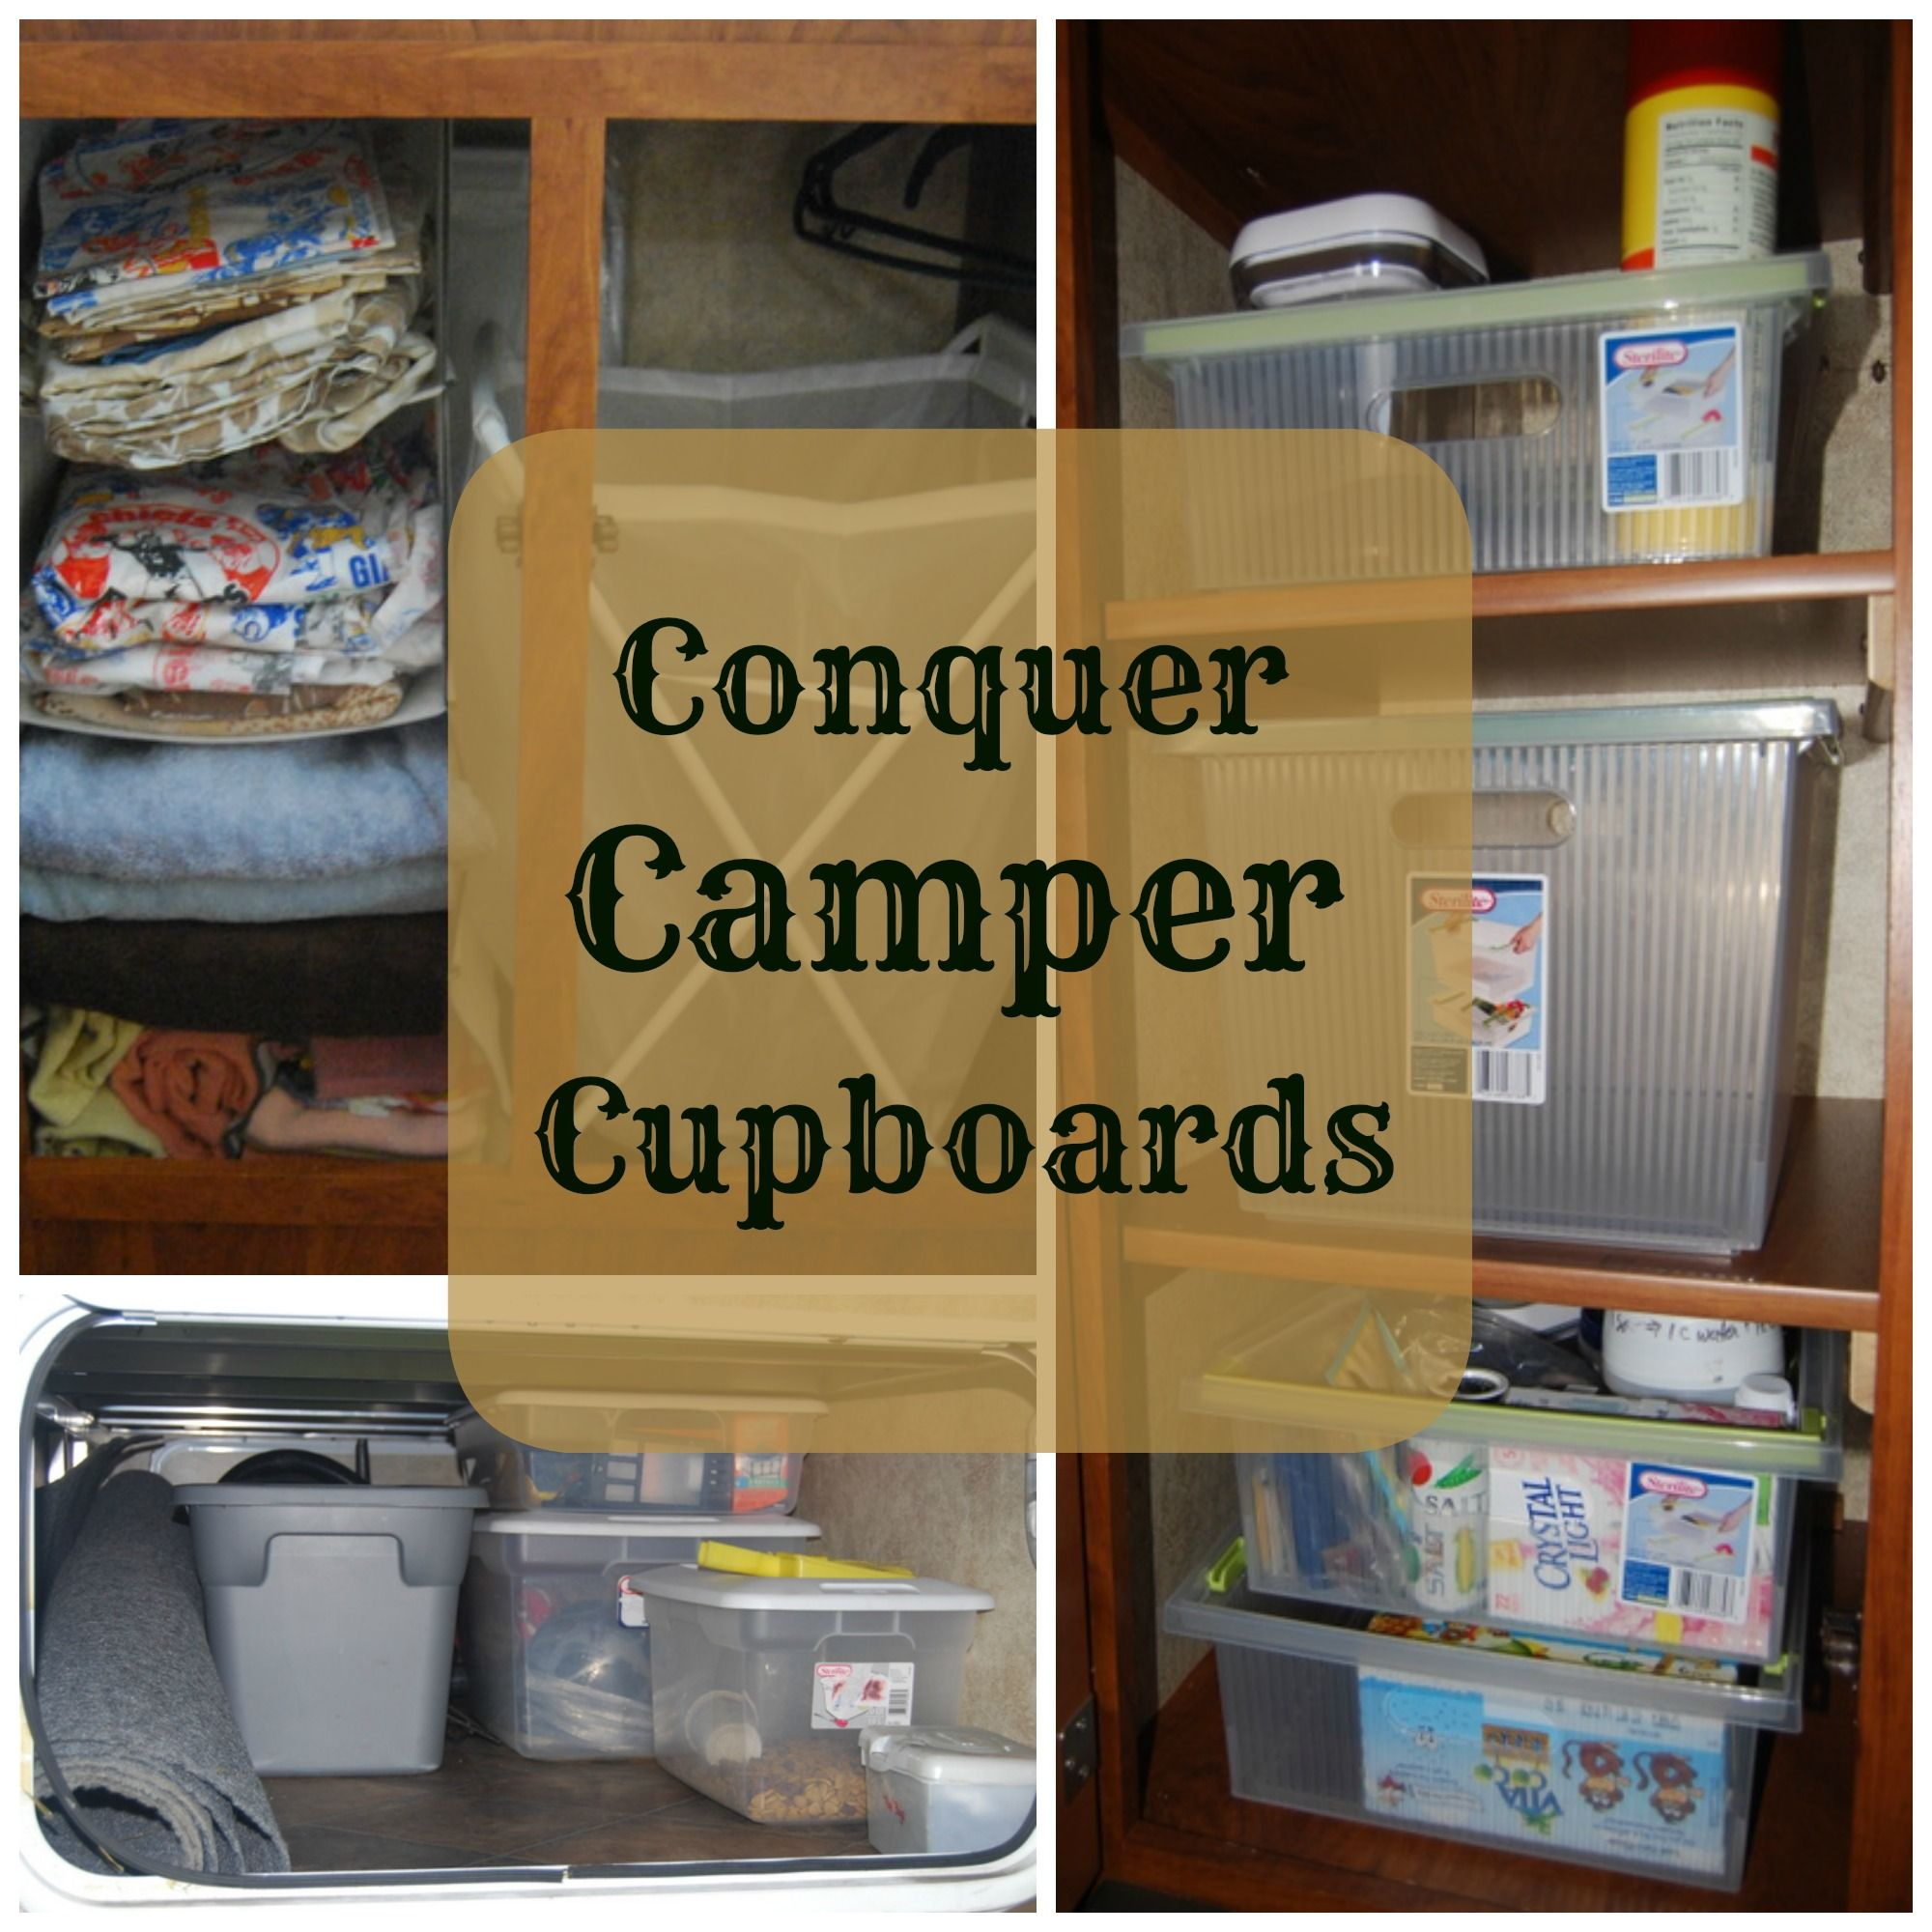 Conquer camper cupboards cupboard rv and camping for Rb storage